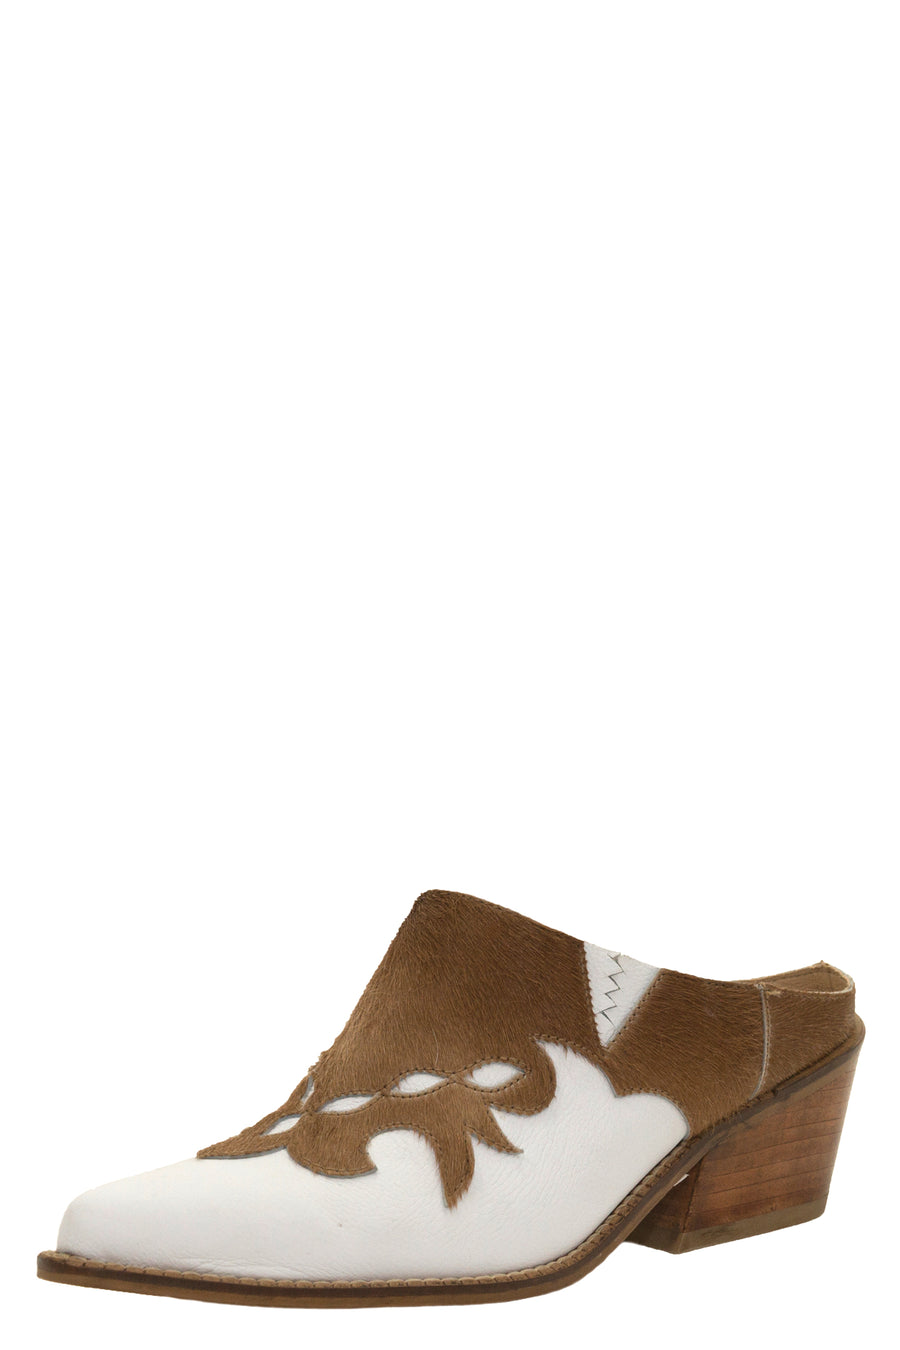 Fiorella mules in white leather along with brown cowhide leather